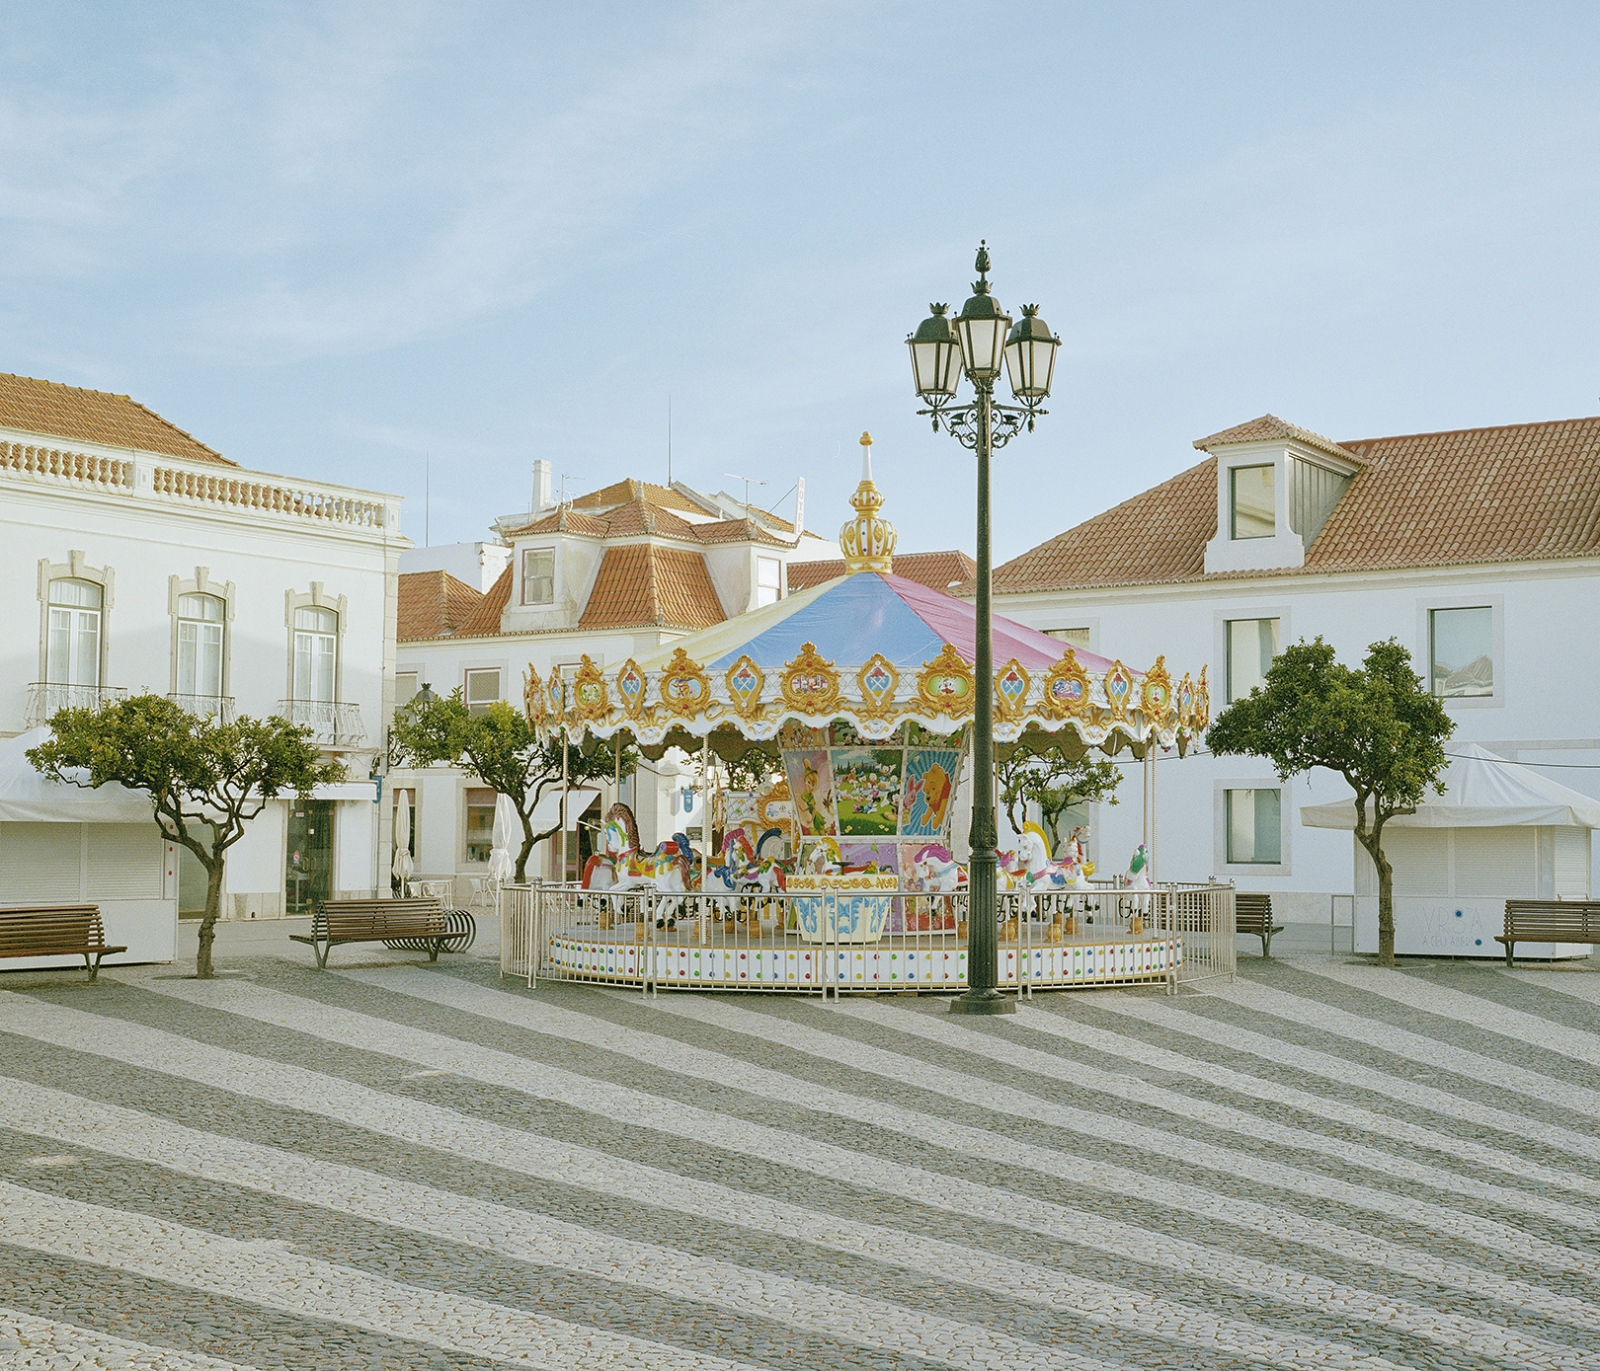 Portugal, Vila Real de Santo Antonio. A carosel in an empty square of the city. During the economical crisis Portugal suffered a decrease of the national tourits.